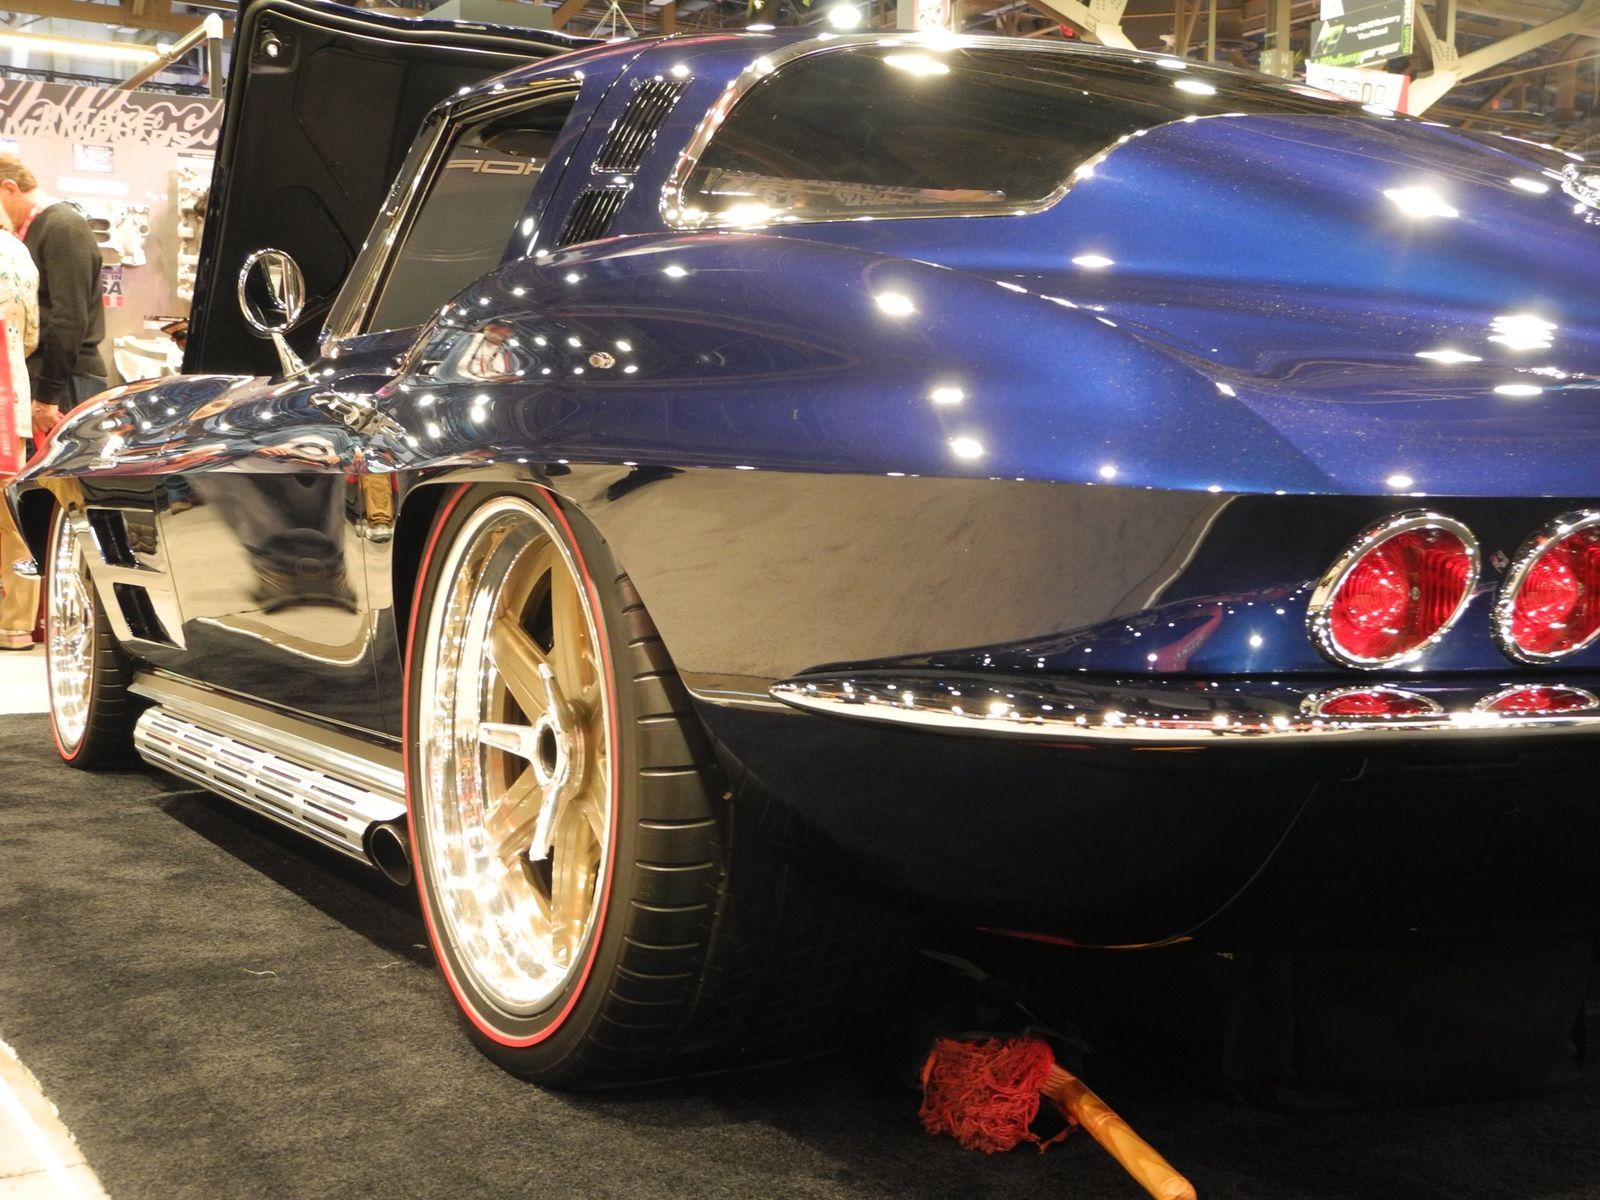 1964 Chevrolet Corvette Stingray | TBT: Roadster Shop Wins GM Design Award for